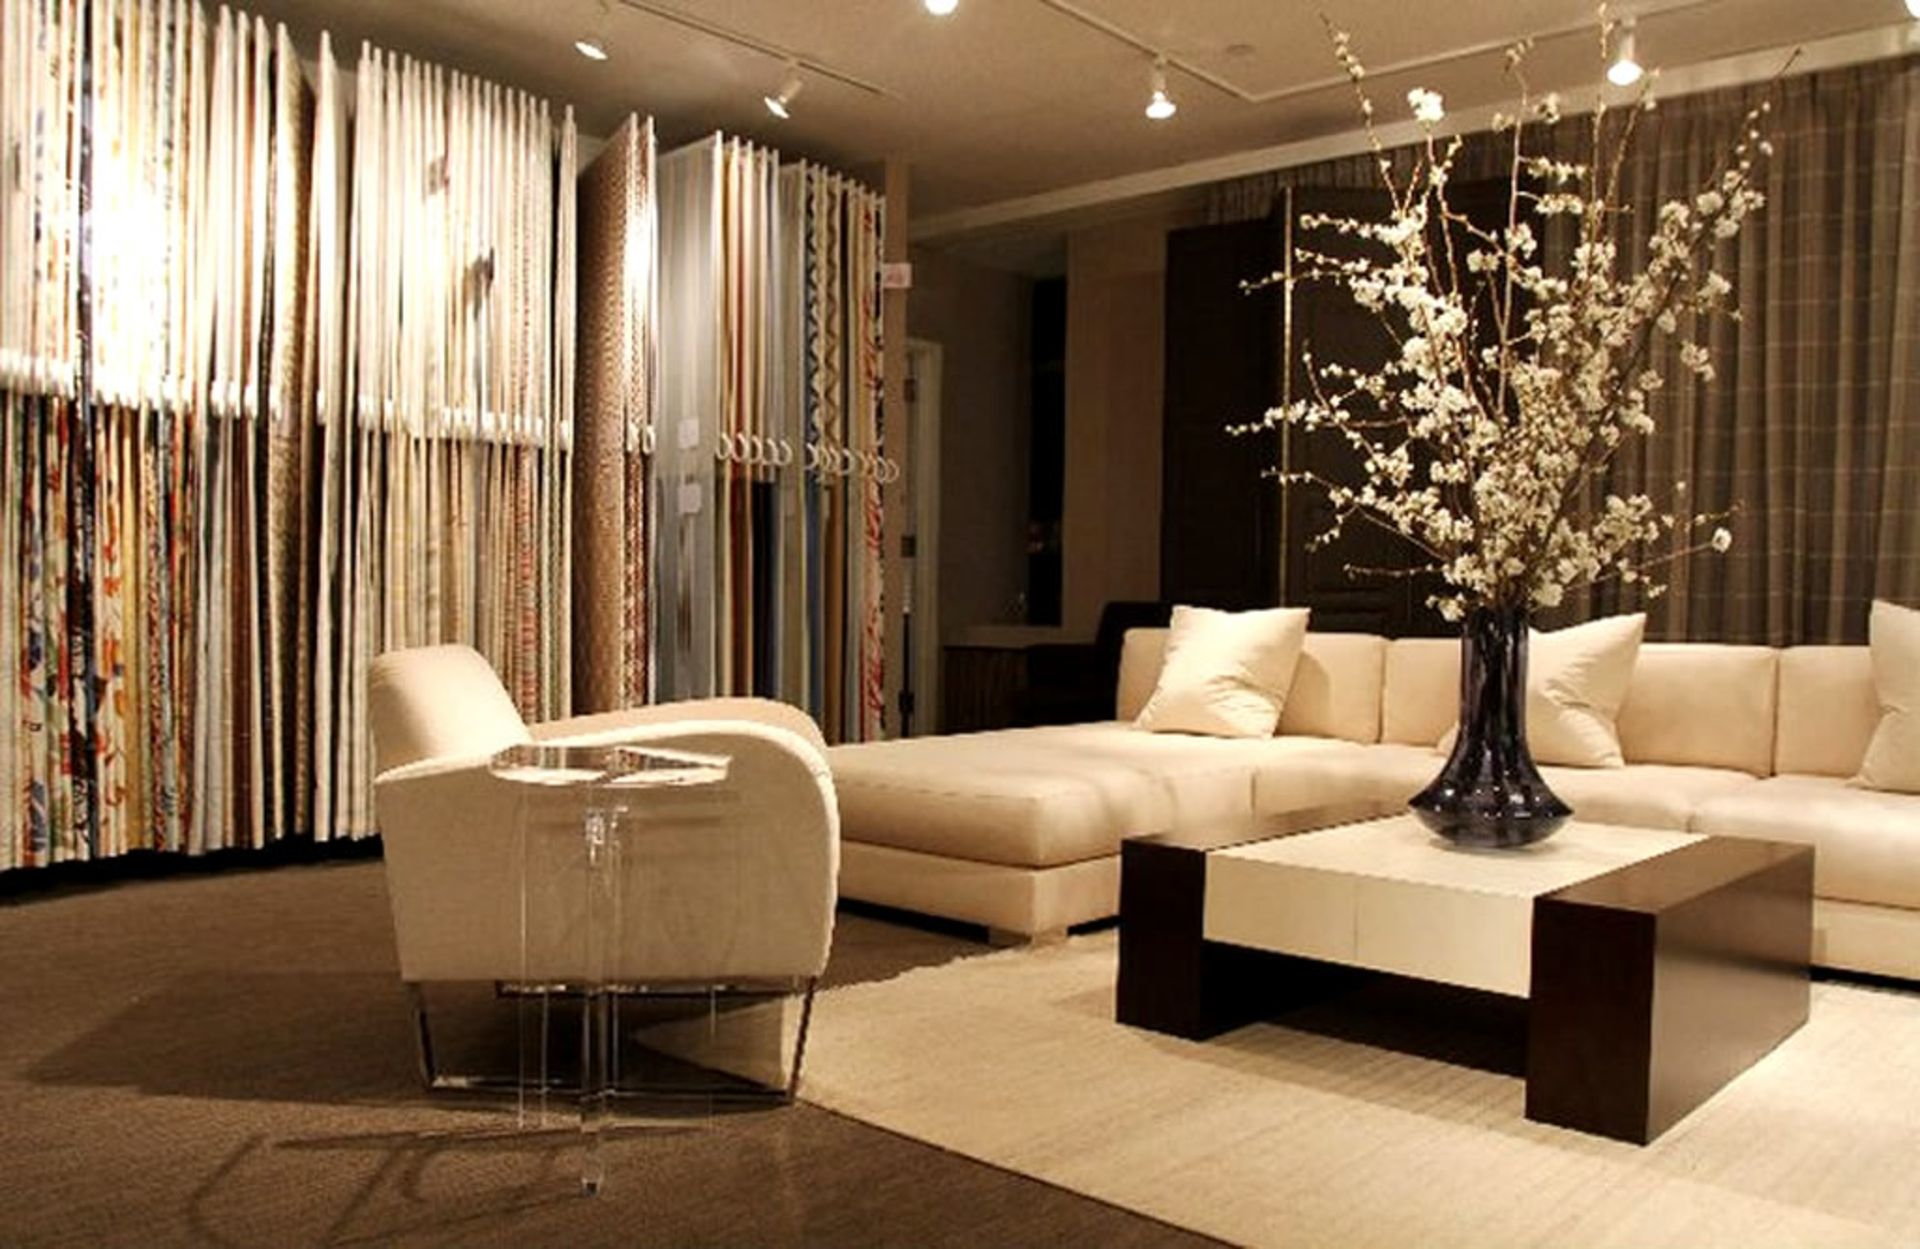 Interior Design Services X Luxury Furniture Retail Donghia Showroom In New York With Focal Chair Chairint